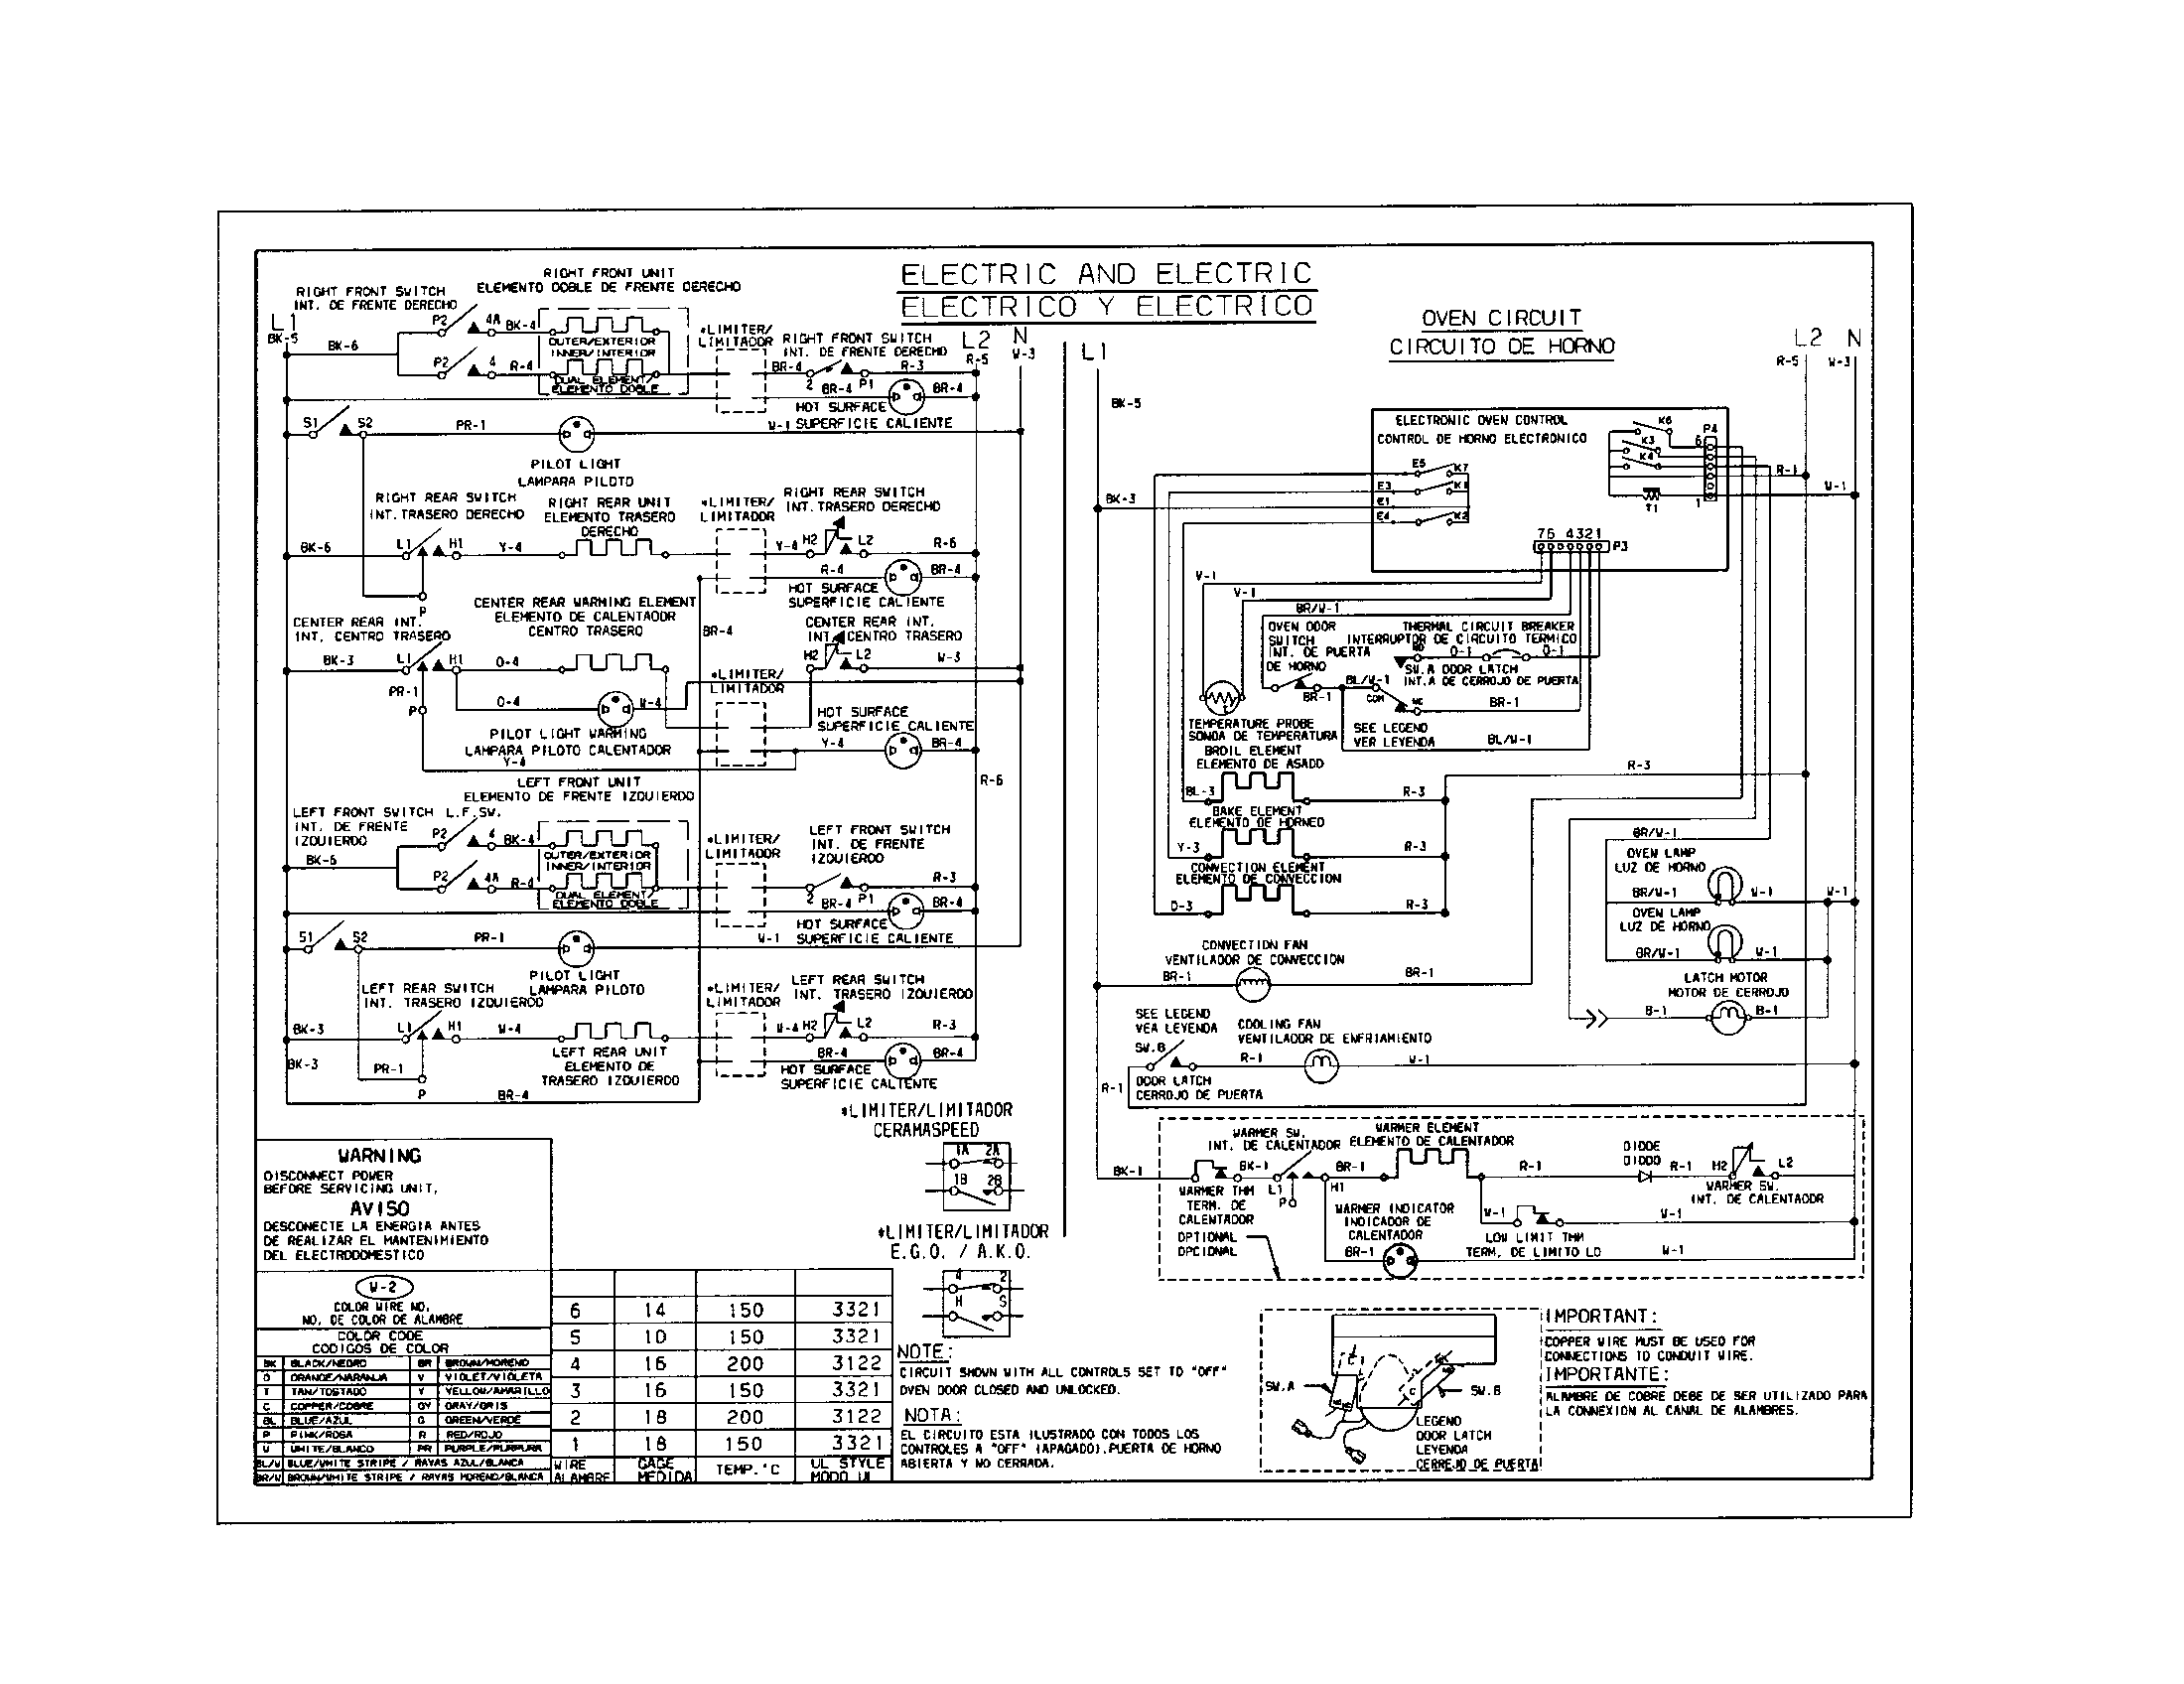 Kenmore Elite Dishwasher Wiring Diagram on danby dishwasher wiring diagram, samsung washing machine wiring diagram, maytag dishwasher wiring diagram, ge washer wiring diagram, kitchenaid dishwasher wiring diagram, lg dishwasher wiring diagram, hobart dishwasher wiring diagram, kitchenaid refrigerator wiring diagram, whirlpool refrigerator wiring diagram, maytag washer wiring diagram, samsung dishwasher wiring diagram, whirlpool dishwasher wiring diagram,